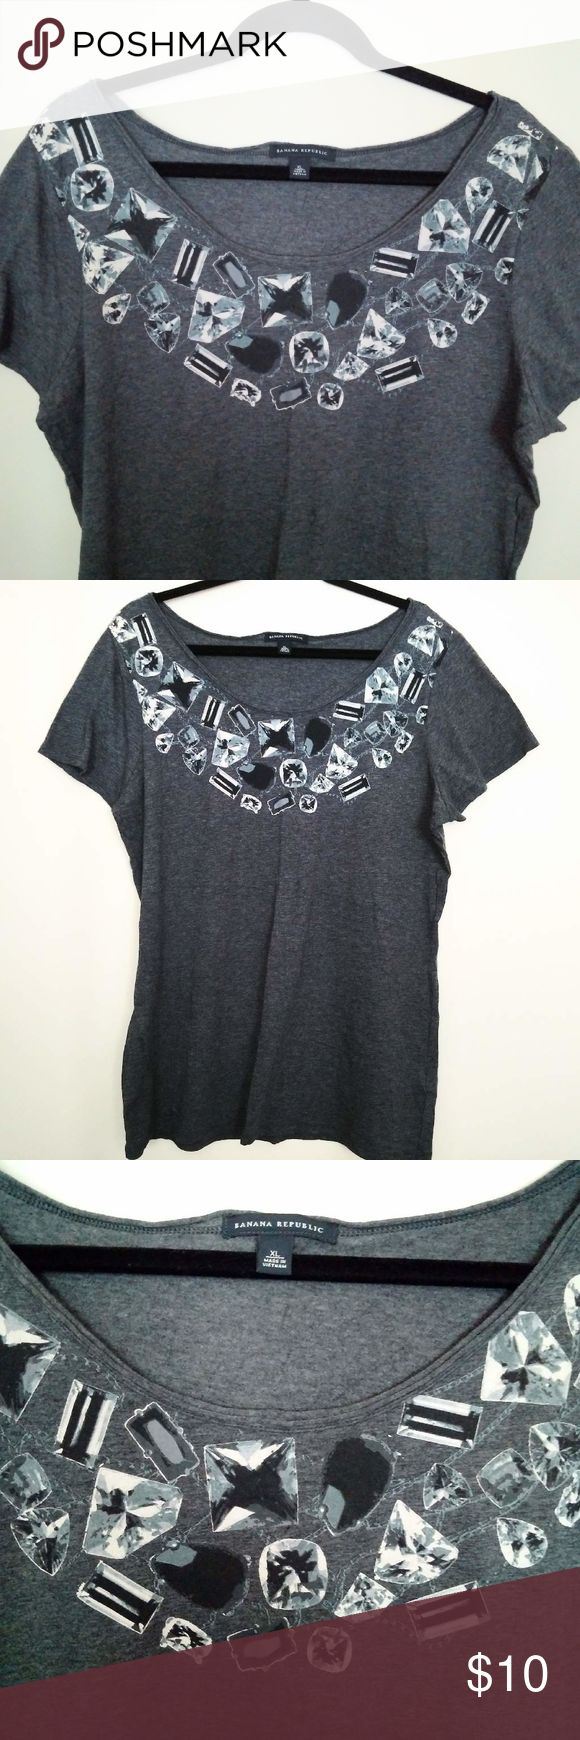 Banana Republic Gem Stone Graphic Scoop-neck Tee‎ Banana Republic Gem Stone Graphic Print Tee. Feel is soft cotton. Scoop-neck style. Short sleeve. Dark Gray/Charcoal color tee with black and white printed Gem stone design around neck to mimic a necklace. Women's  Size XL / Xtra-Large. NEW without tags.‎ Banana Republic Tops Tees - Short Sleeve